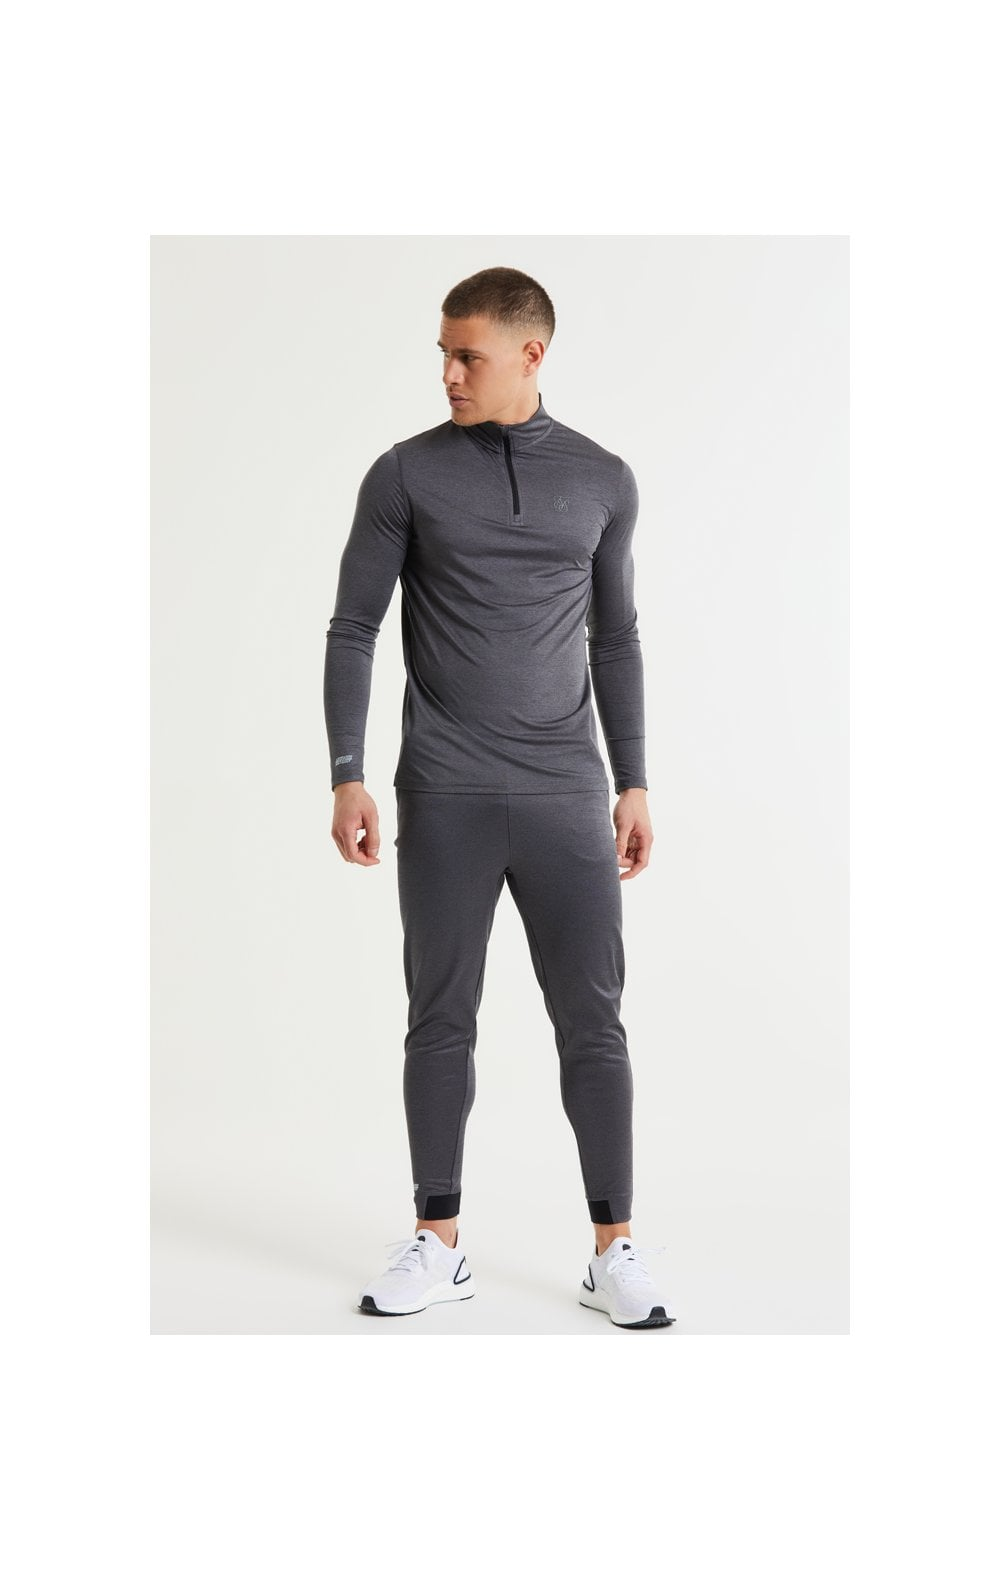 SikSilk Pressure Zip Funnel Neck - Charcoal Marl (5)